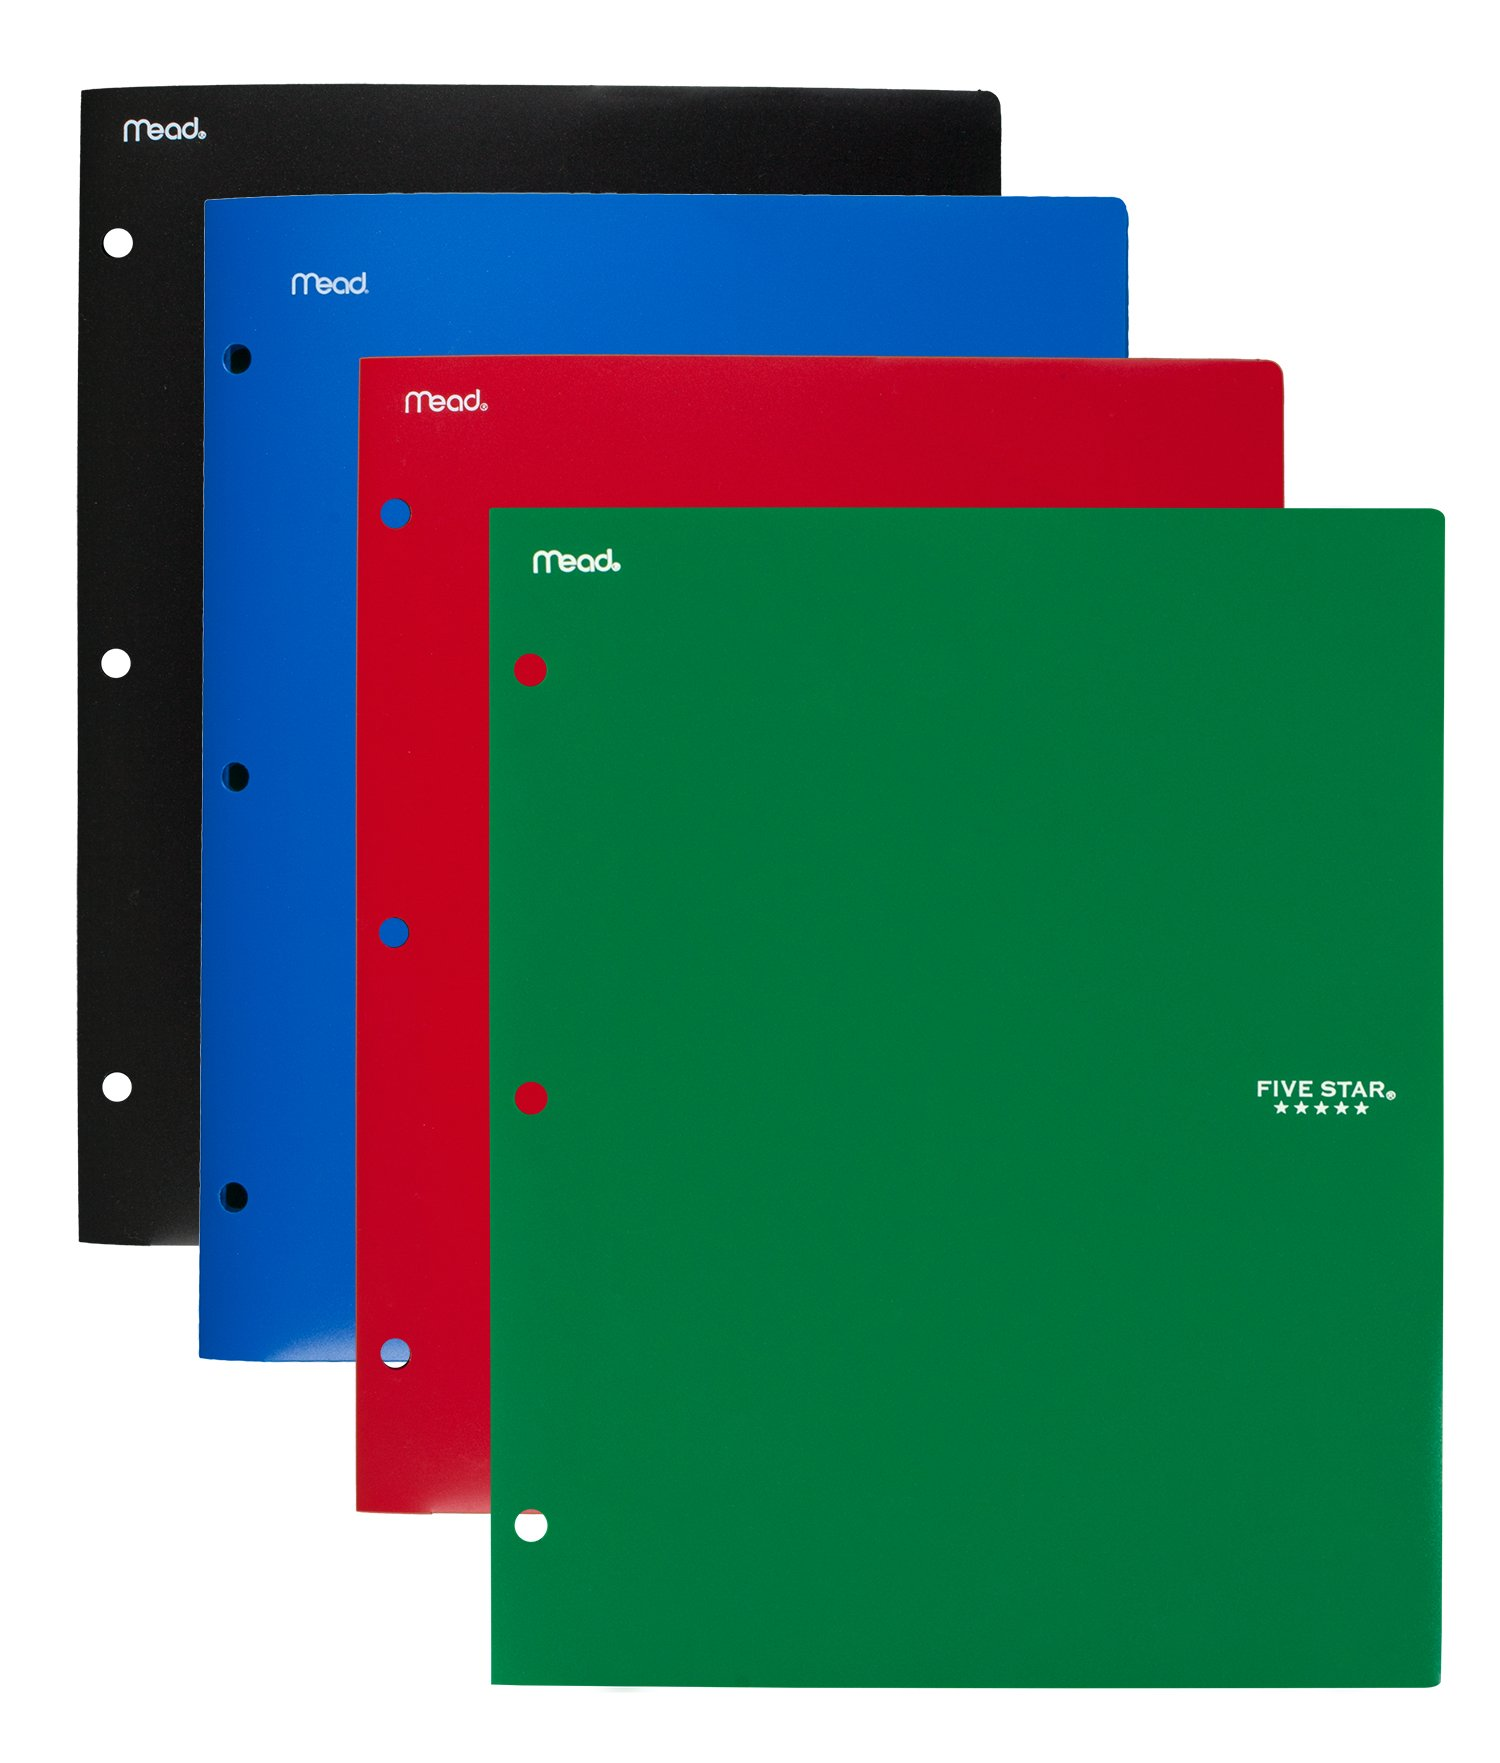 Five Star 2 Pocket Folders, Stay-Put Tabs, Binder Folders with Pockets, Fits 3 Ring Binder, Plastic, Black, Red, Green, Blue, 4 Pack (38049) by Five Star